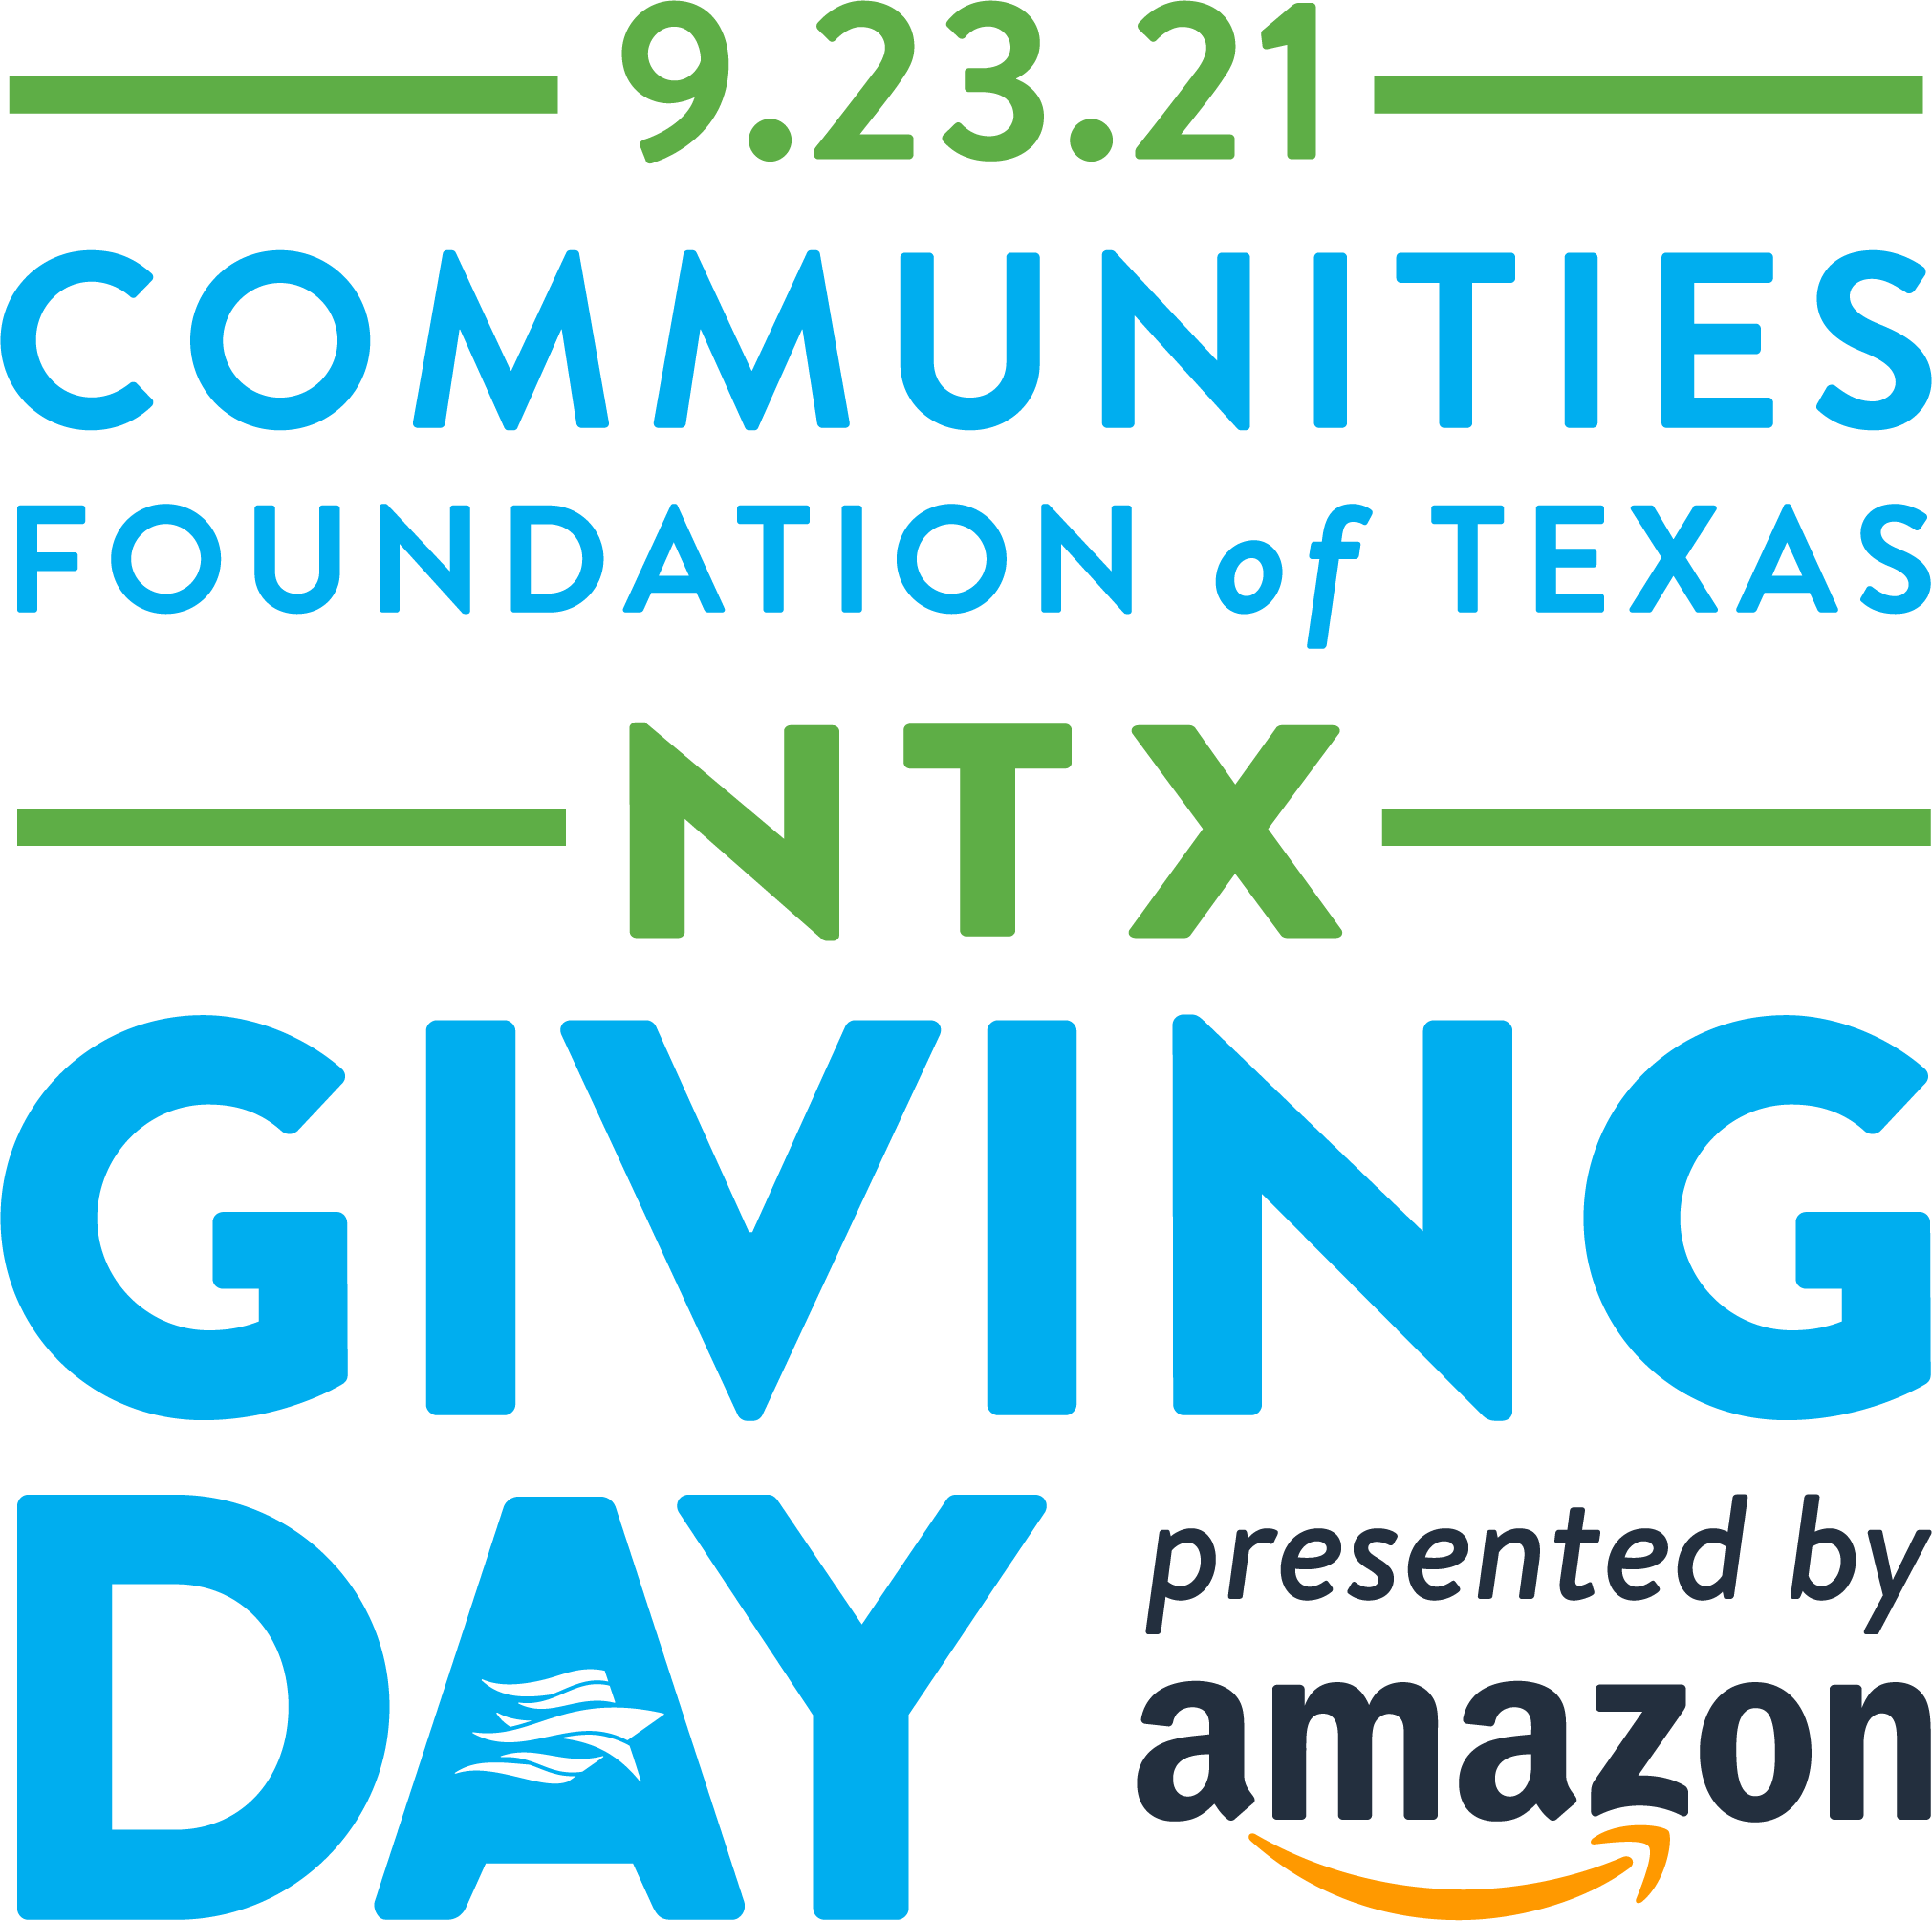 North Texas Giving Day on September 23, 2021